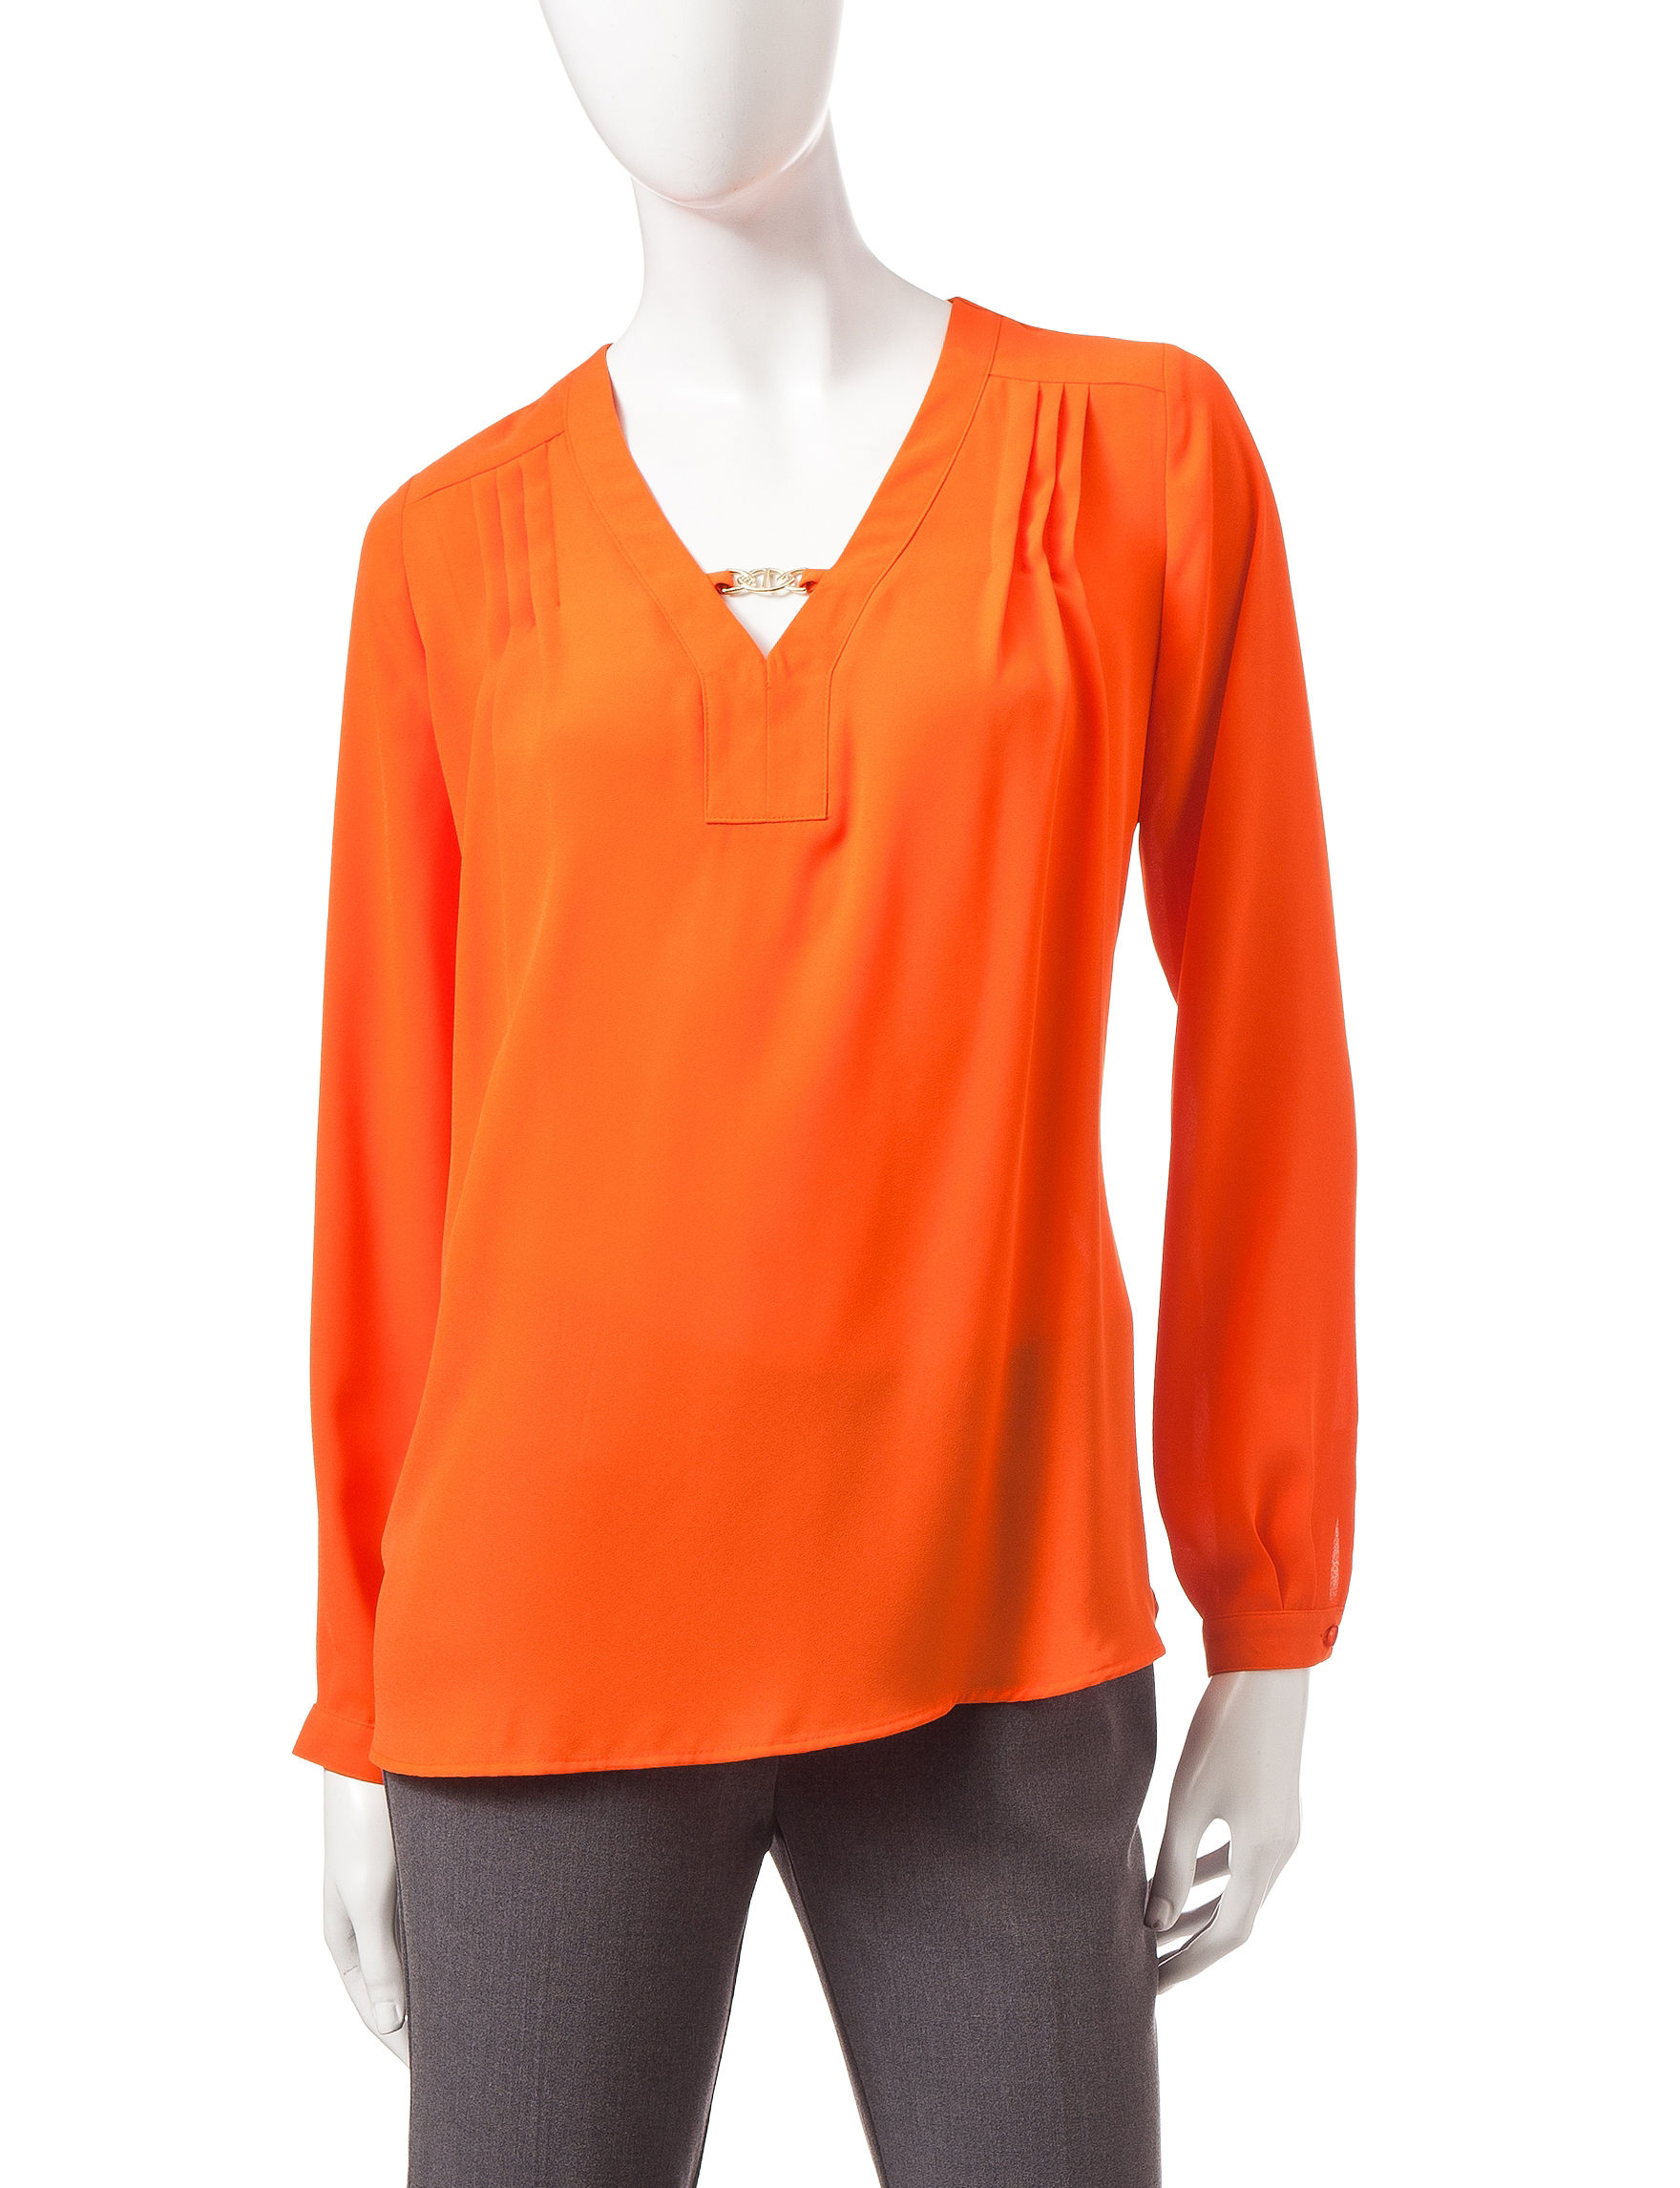 NY Collection Orange Pull-overs Shirts & Blouses